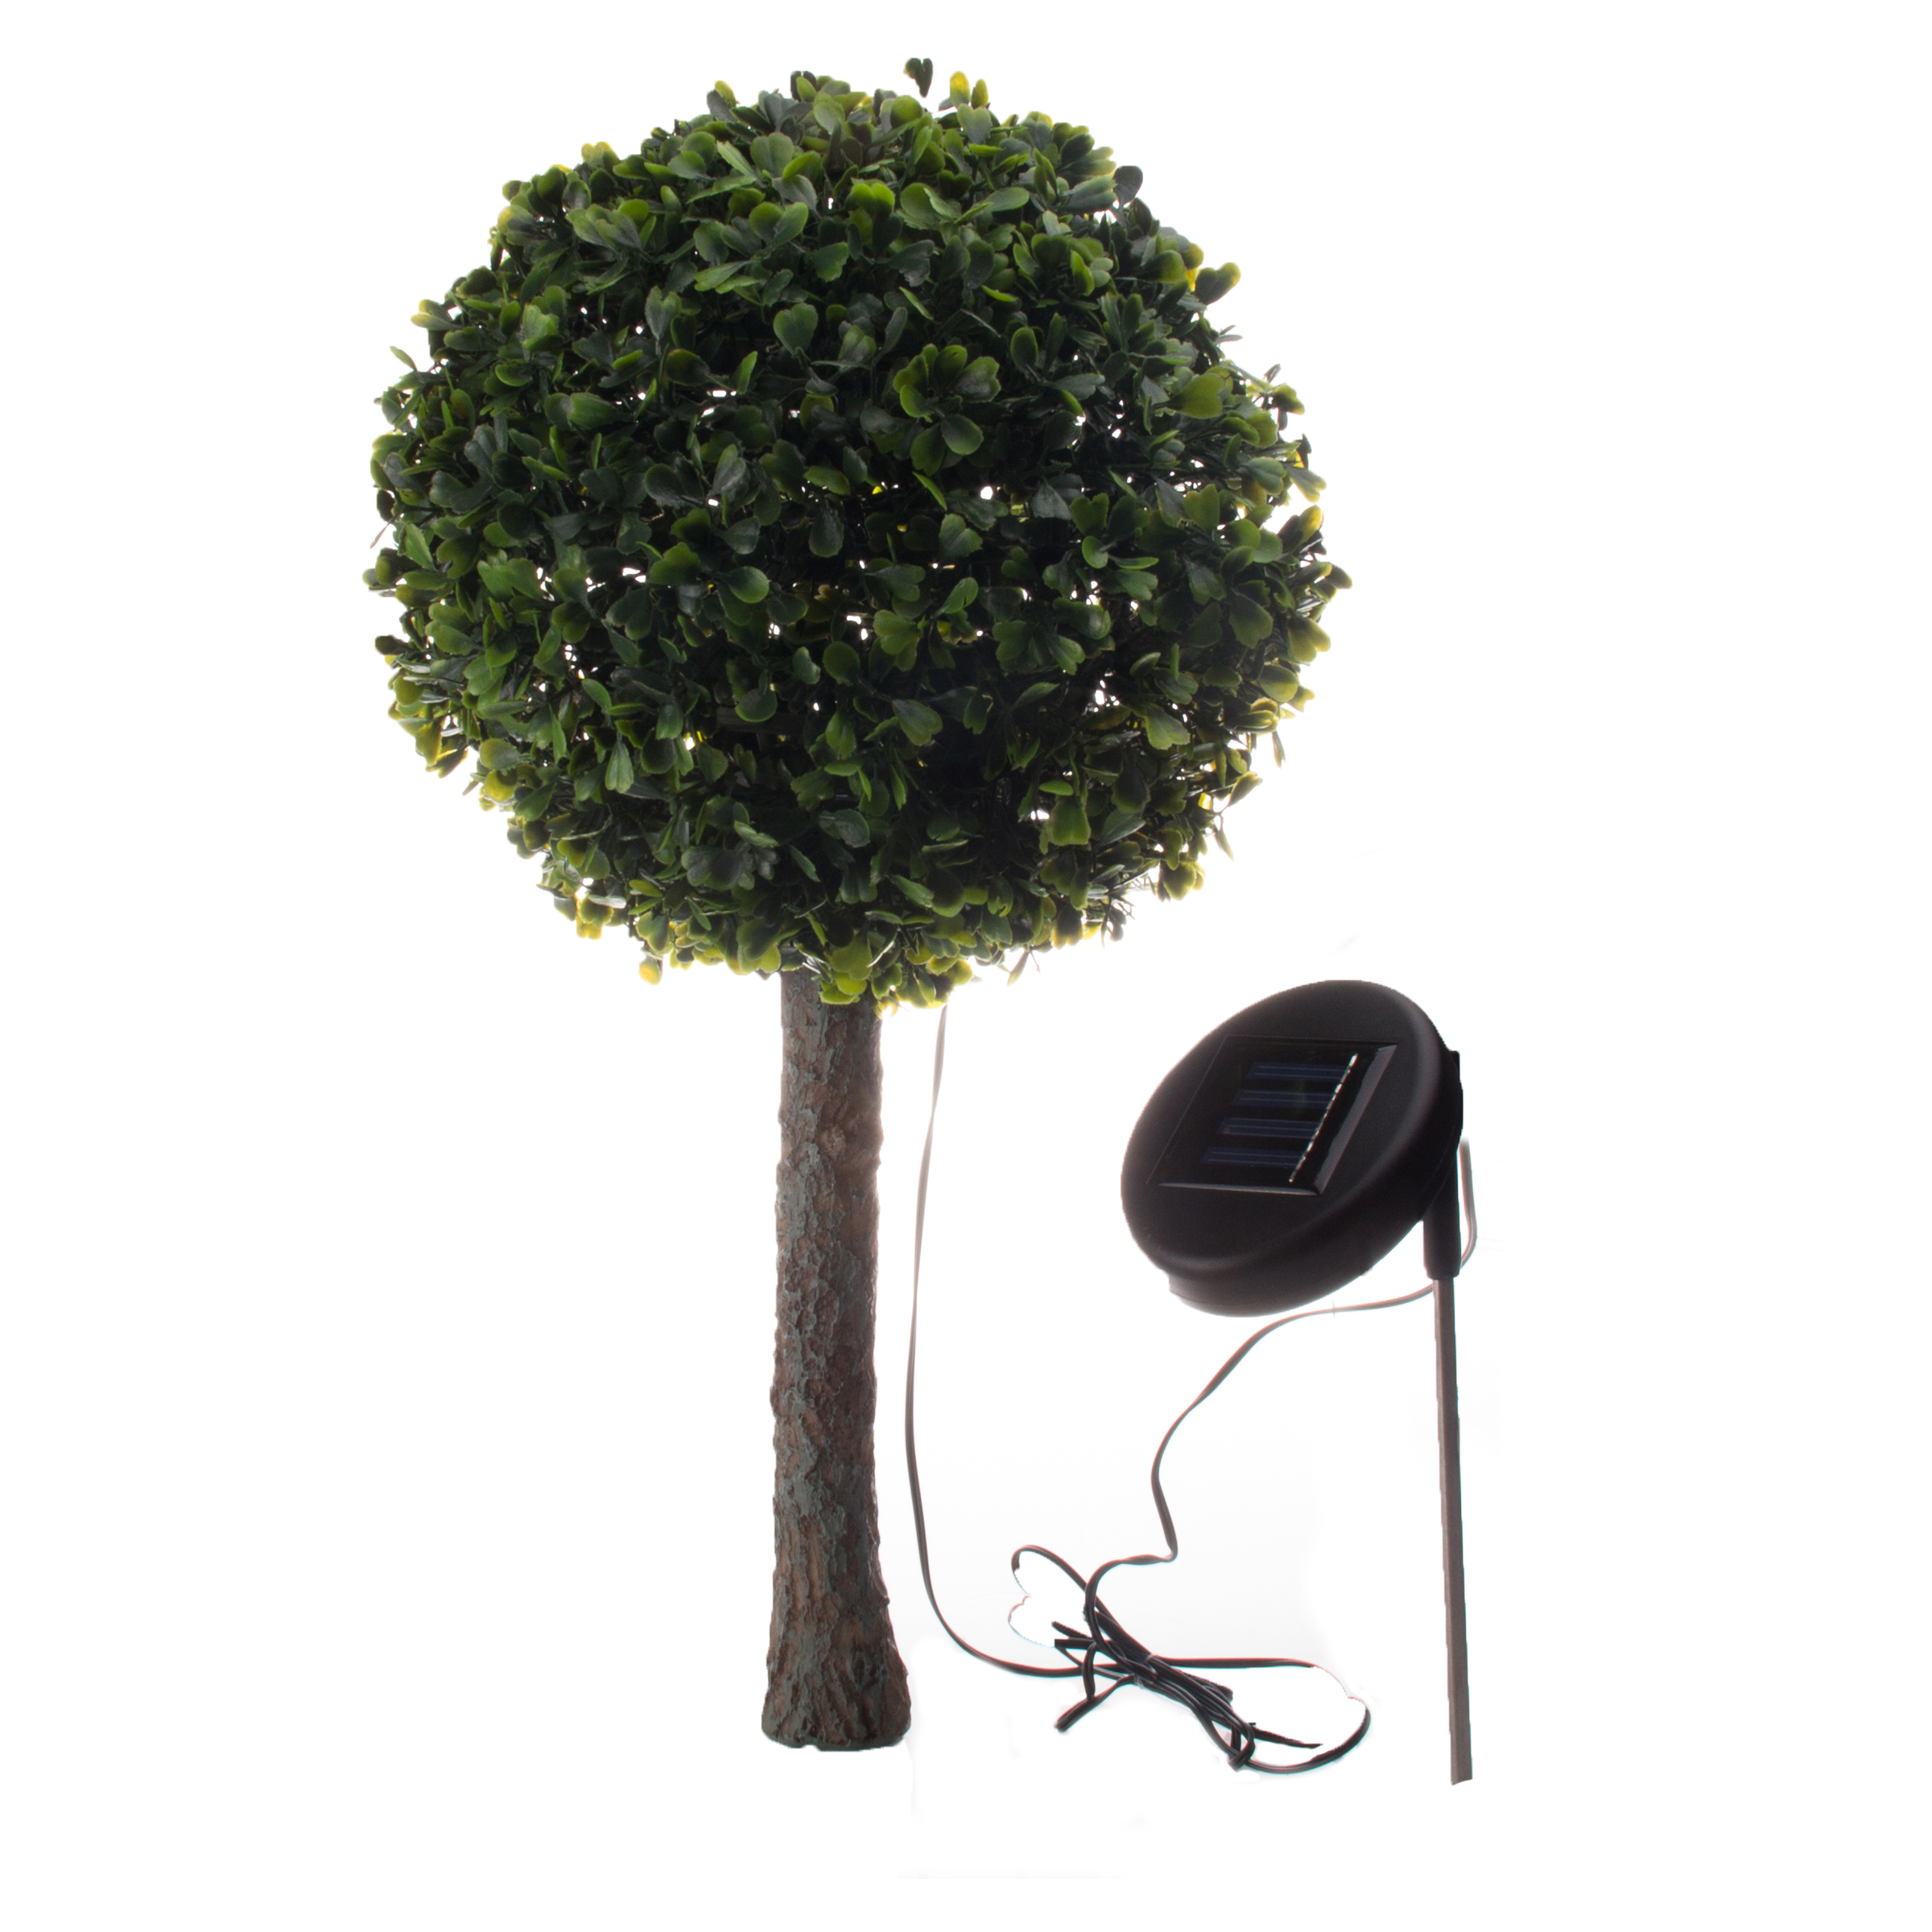 Solar Outdoor Garden 10 LED Topiary Decorative Tree Accent Light Lamp EBay